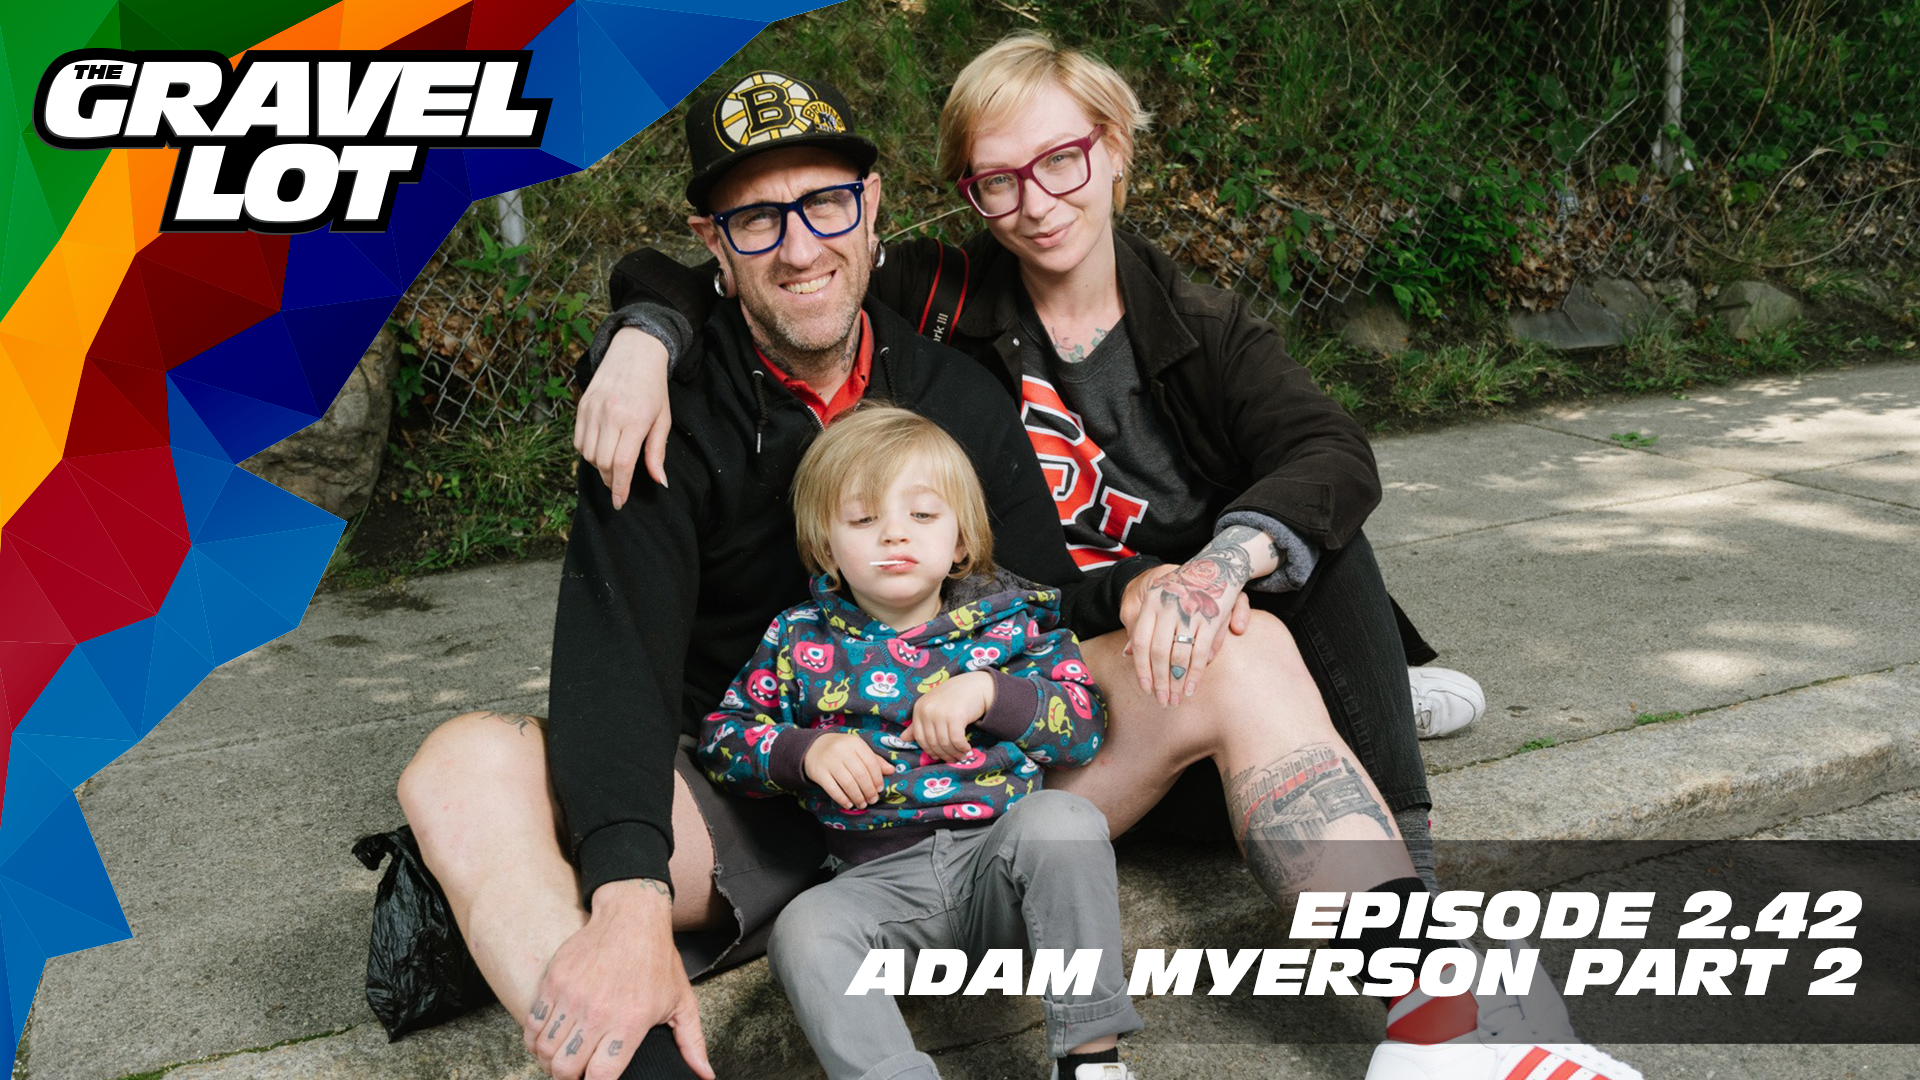 "In part 2 of his interview, Adam Myerson talks fatherhood, being a husband, and relationships. If you know anything about The Gravel Lot or Adam, you know that no topic is off limits. What happens in this episode will surely make you analyze your life and commitments differently.   Learn more about the WORX Hydroshot: Use code ""cleanbike"" at checkout for 15% off    WHOOP    Grimpeur Brothers Coffee: Purchase The Full Schleck or Hello Cyclocross Friends Espresso and support WAP today!    Handup Gloves: Use code ""PEBBLE$"" for 20% off EVERYTHING in store.    RoadID: Save $10 off ANY order over $20.    Be Free Ride Bikes:    Exclusive Preview of Unknown Country: One man's inspirational journey to the Dirty Kanza XL    Visit The Gravel Lot website for our latest podcast, Real Talk videos, Bonus Content, shop, social media, and everything in between.   Subscribe to The Gravel Lot on the  Wide Angle Podium Network and become a member TODAY and get access to EXCLUSIVE bonus content.   Learn more about Undertipper and download their latest album ""Y'all"" at:  http://undertipper.bandcamp.com/"